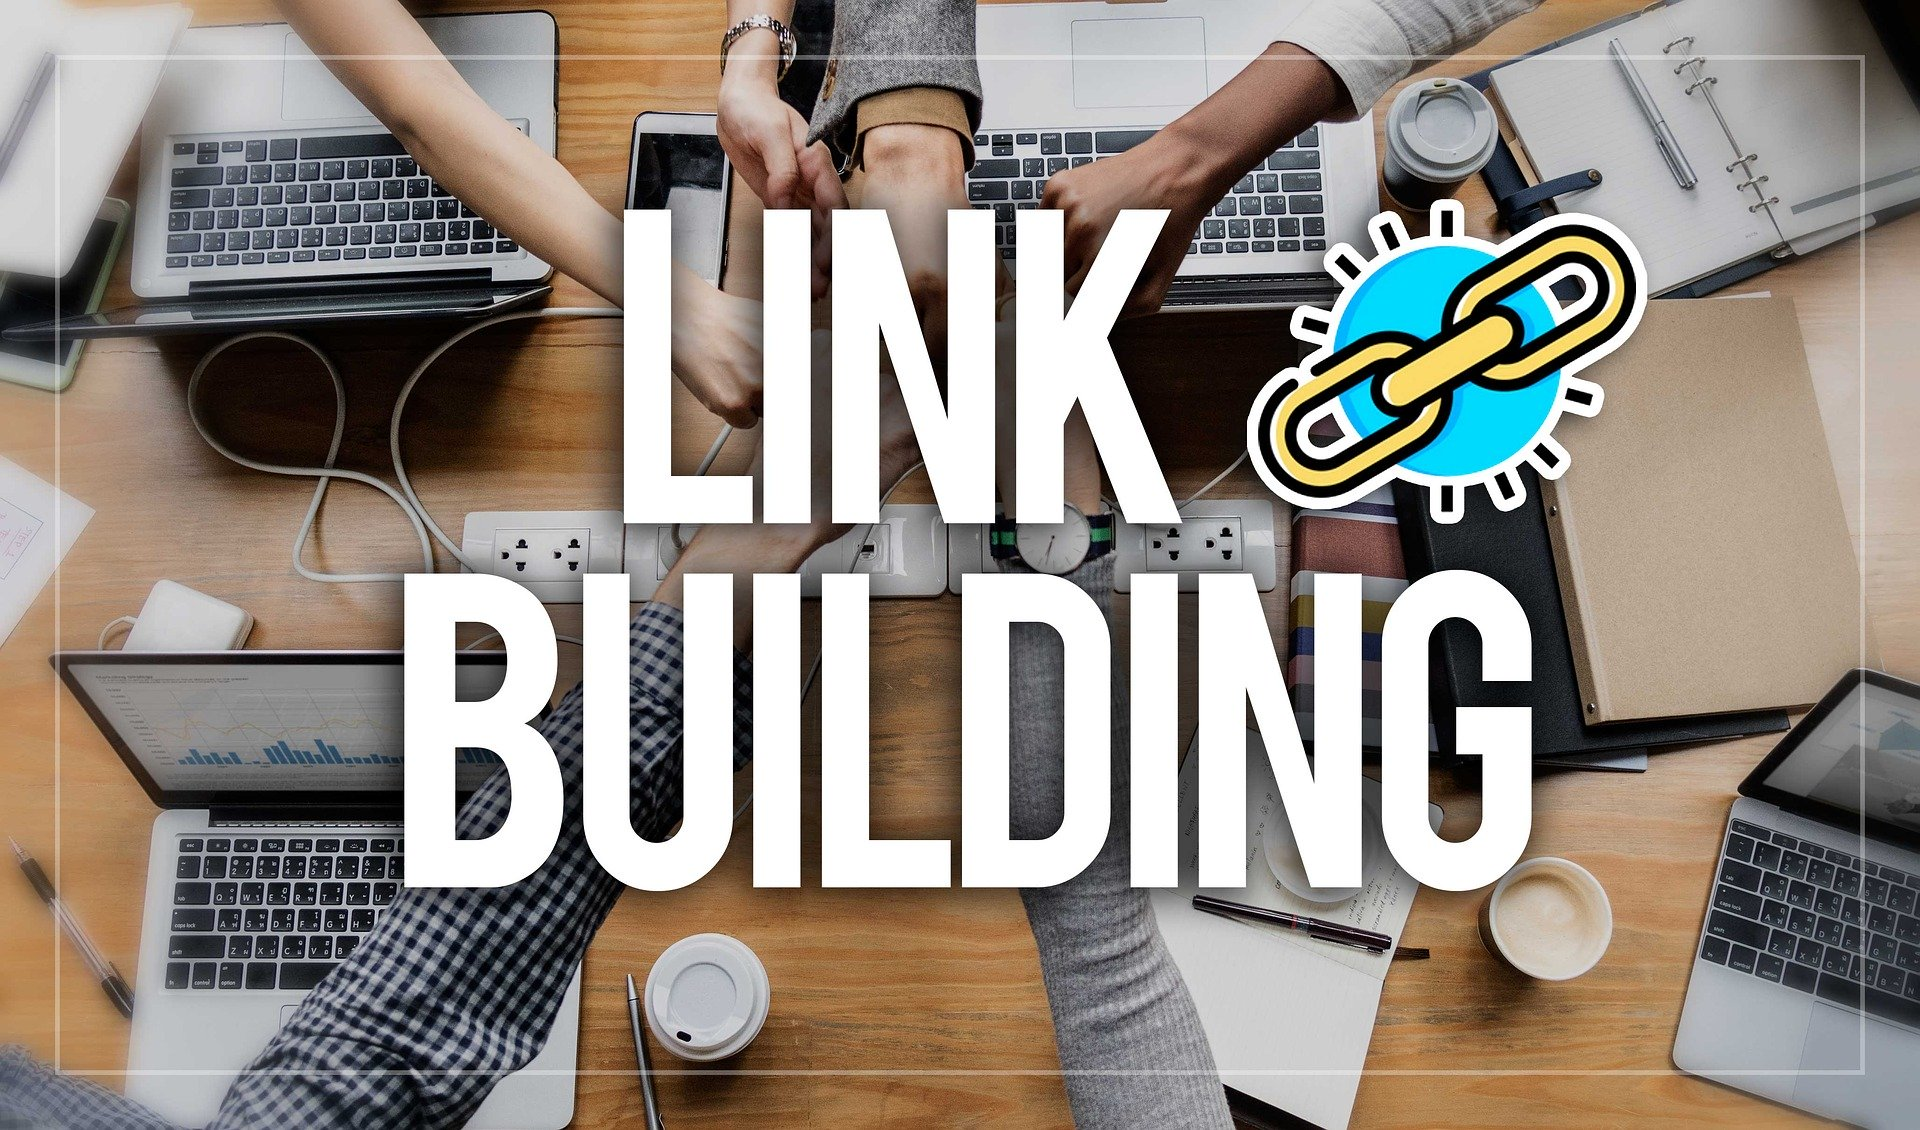 Link Building Services: 7 Best Link Building Tools for SEO